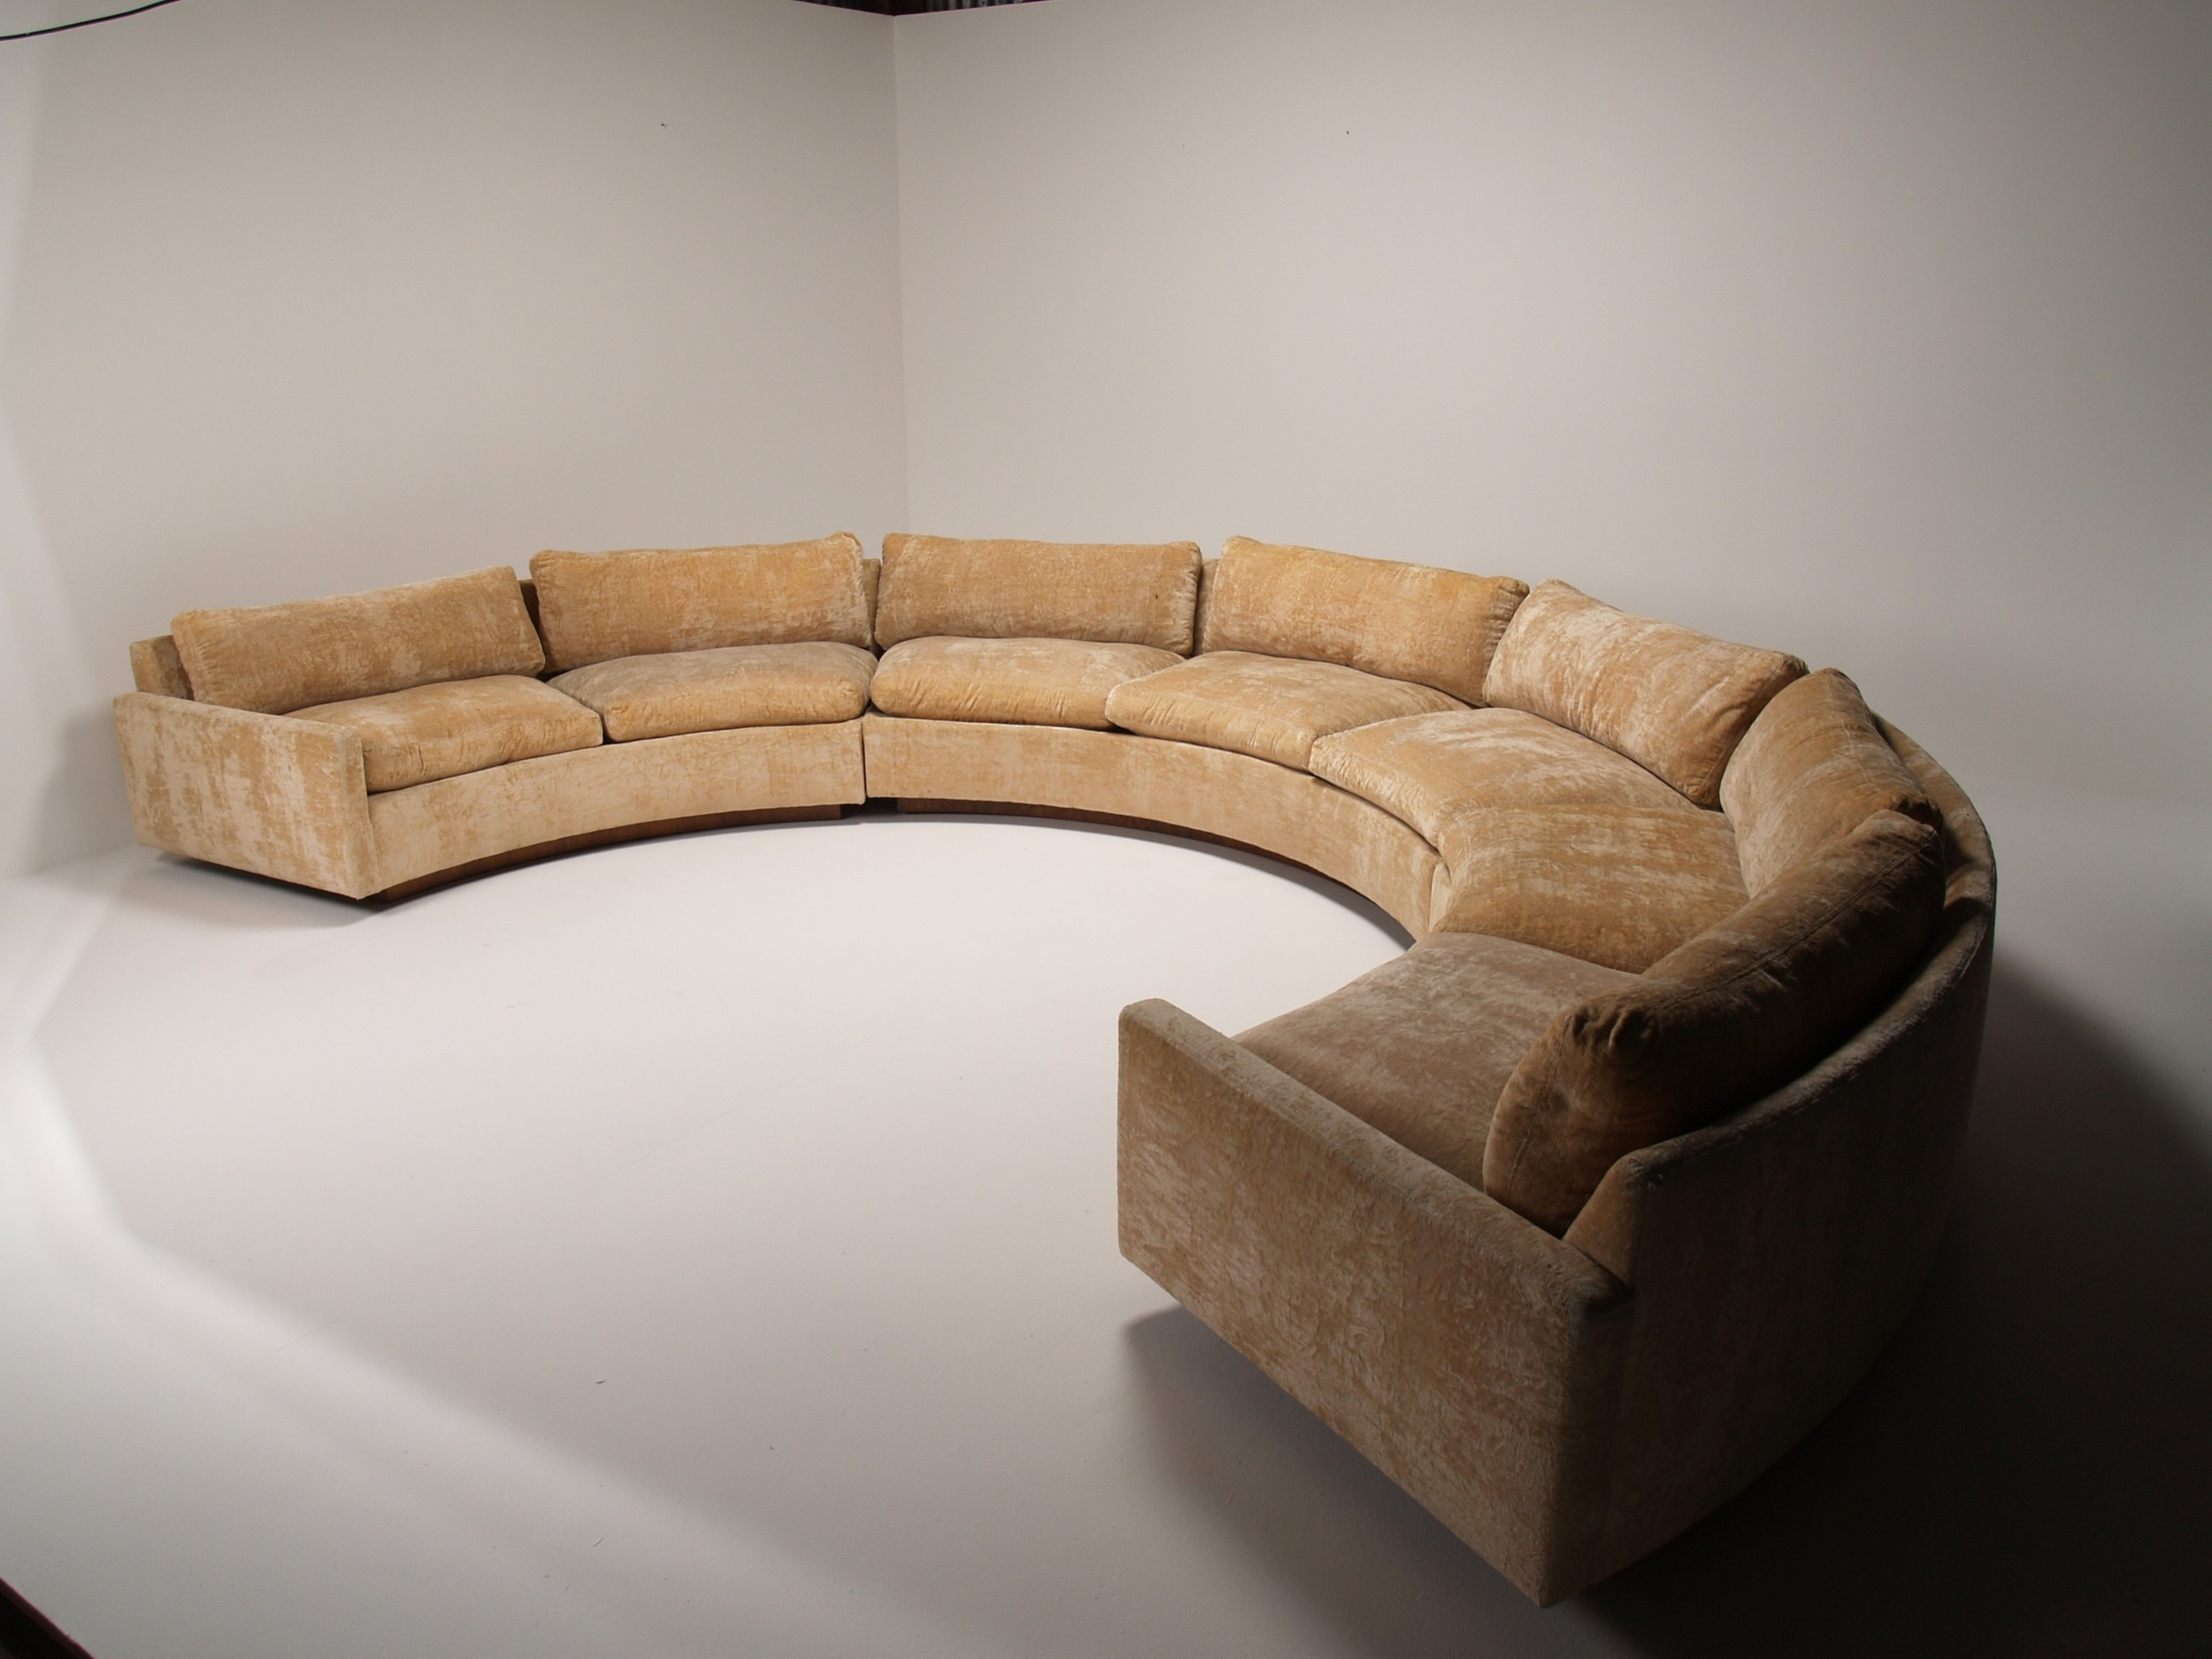 Fascinating Semi Circular Sofas Sectionals 55 On Convertible In Semicircular Sofas (View 2 of 10)